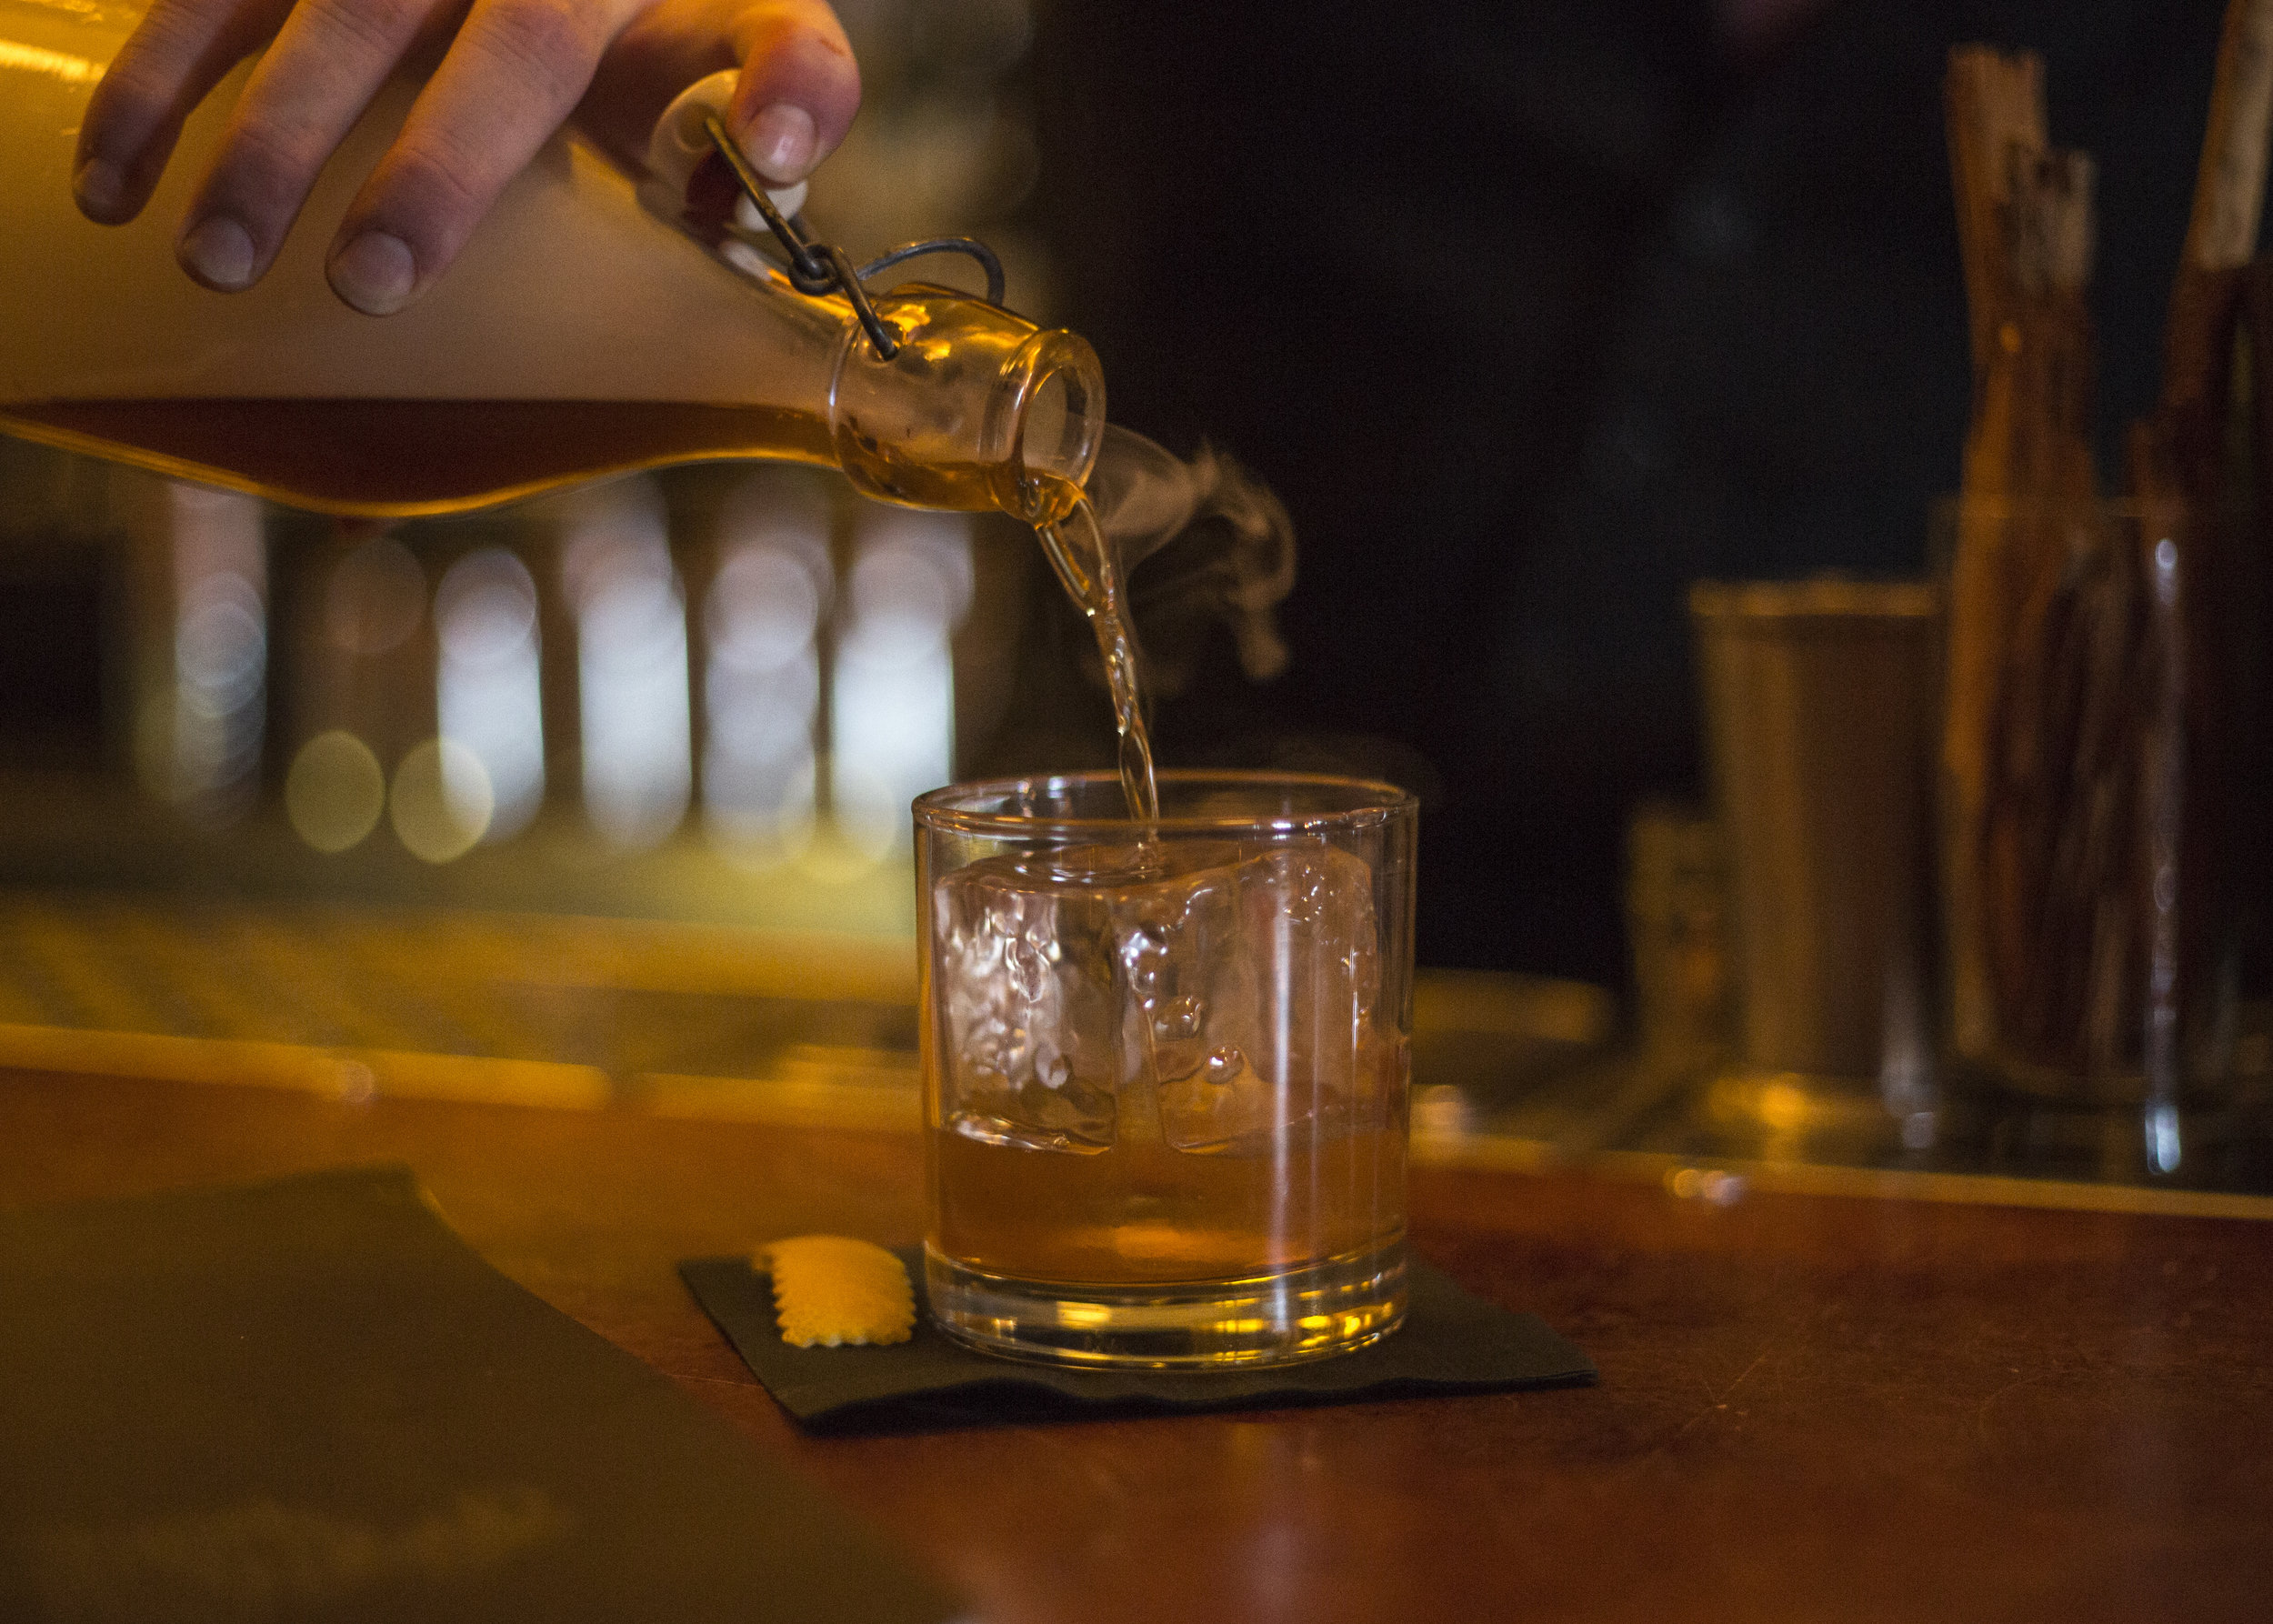 The Smoked Old Fashioned from the Sugar House in the Corktown neighborhood harkens back to the city's days during prohibition. The bar is named after the legendary Sugar House gang of the 1920s who bootlegged booze over the border from Canada. This bar is one of Detroit's first craft cocktail bars.